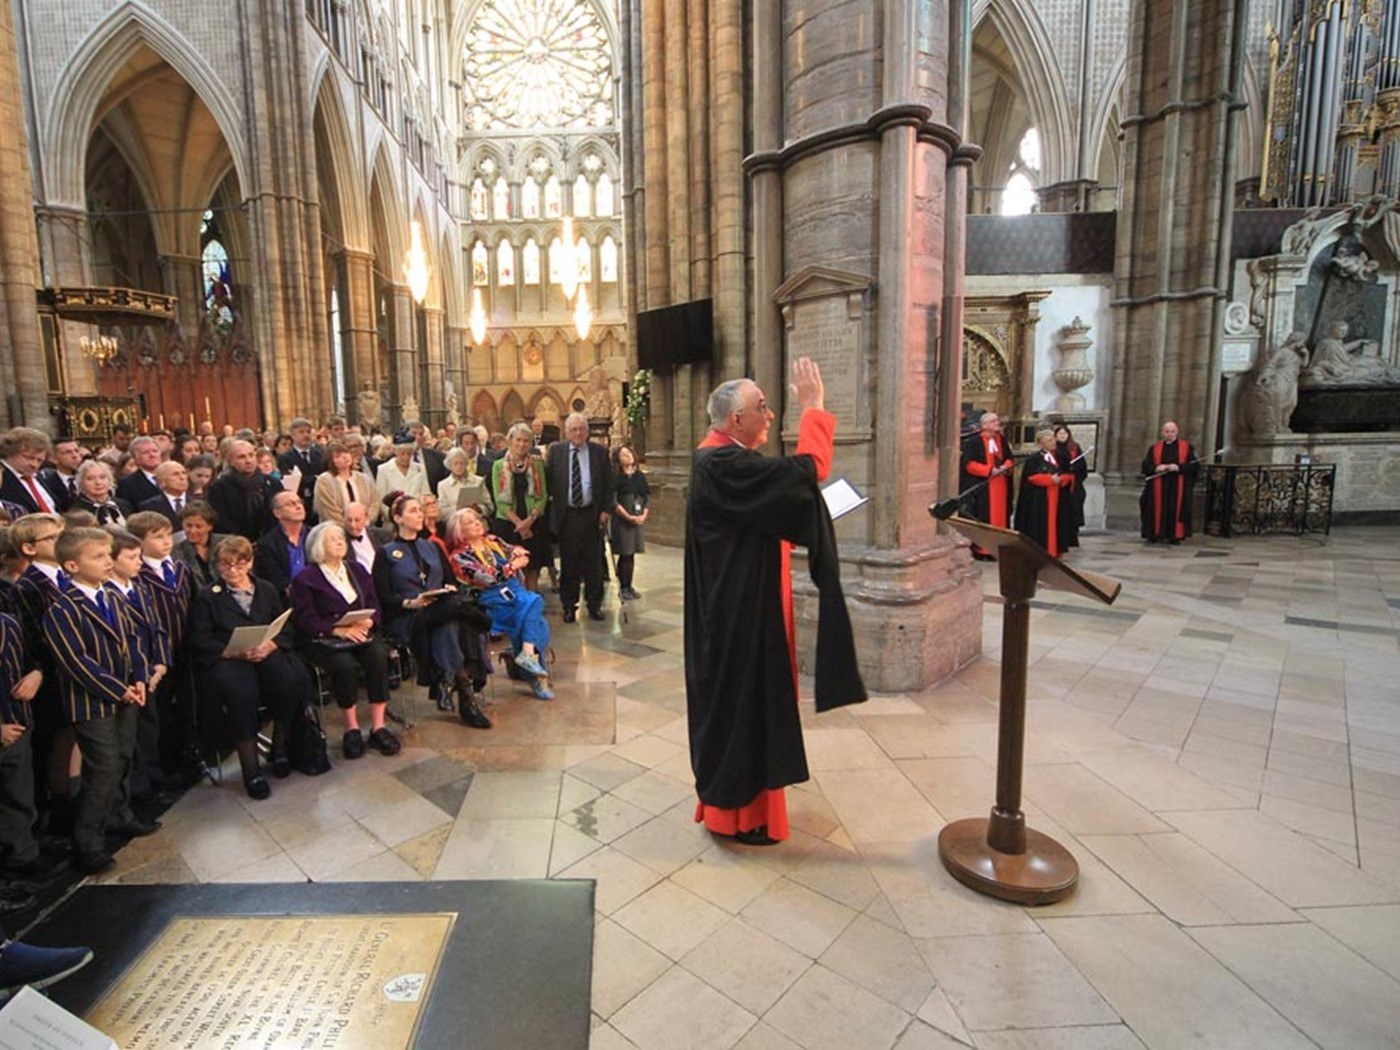 The Dean of Westminster gives The Dedication